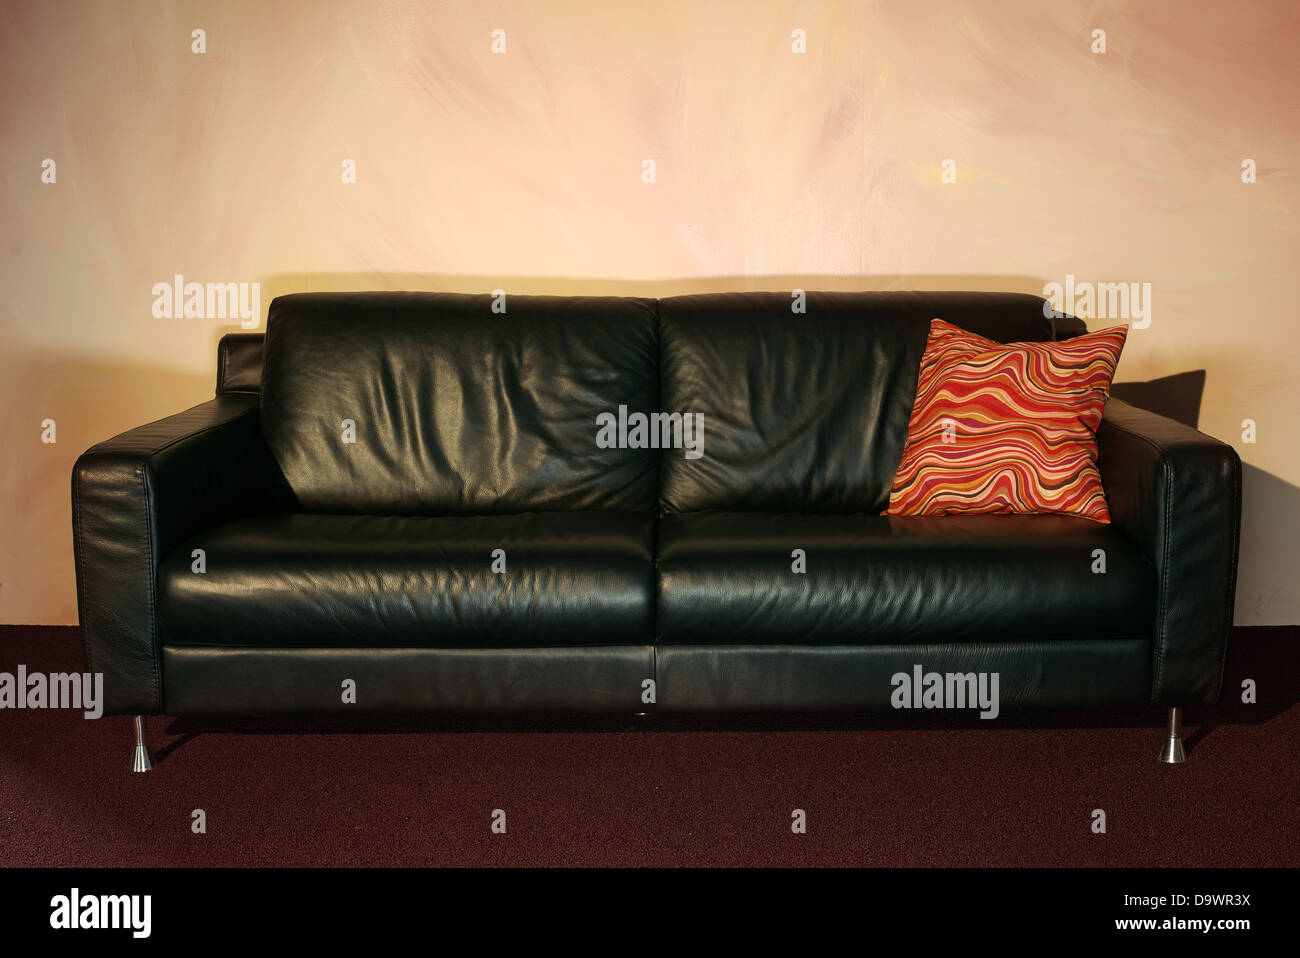 black leather couch - Stock Image